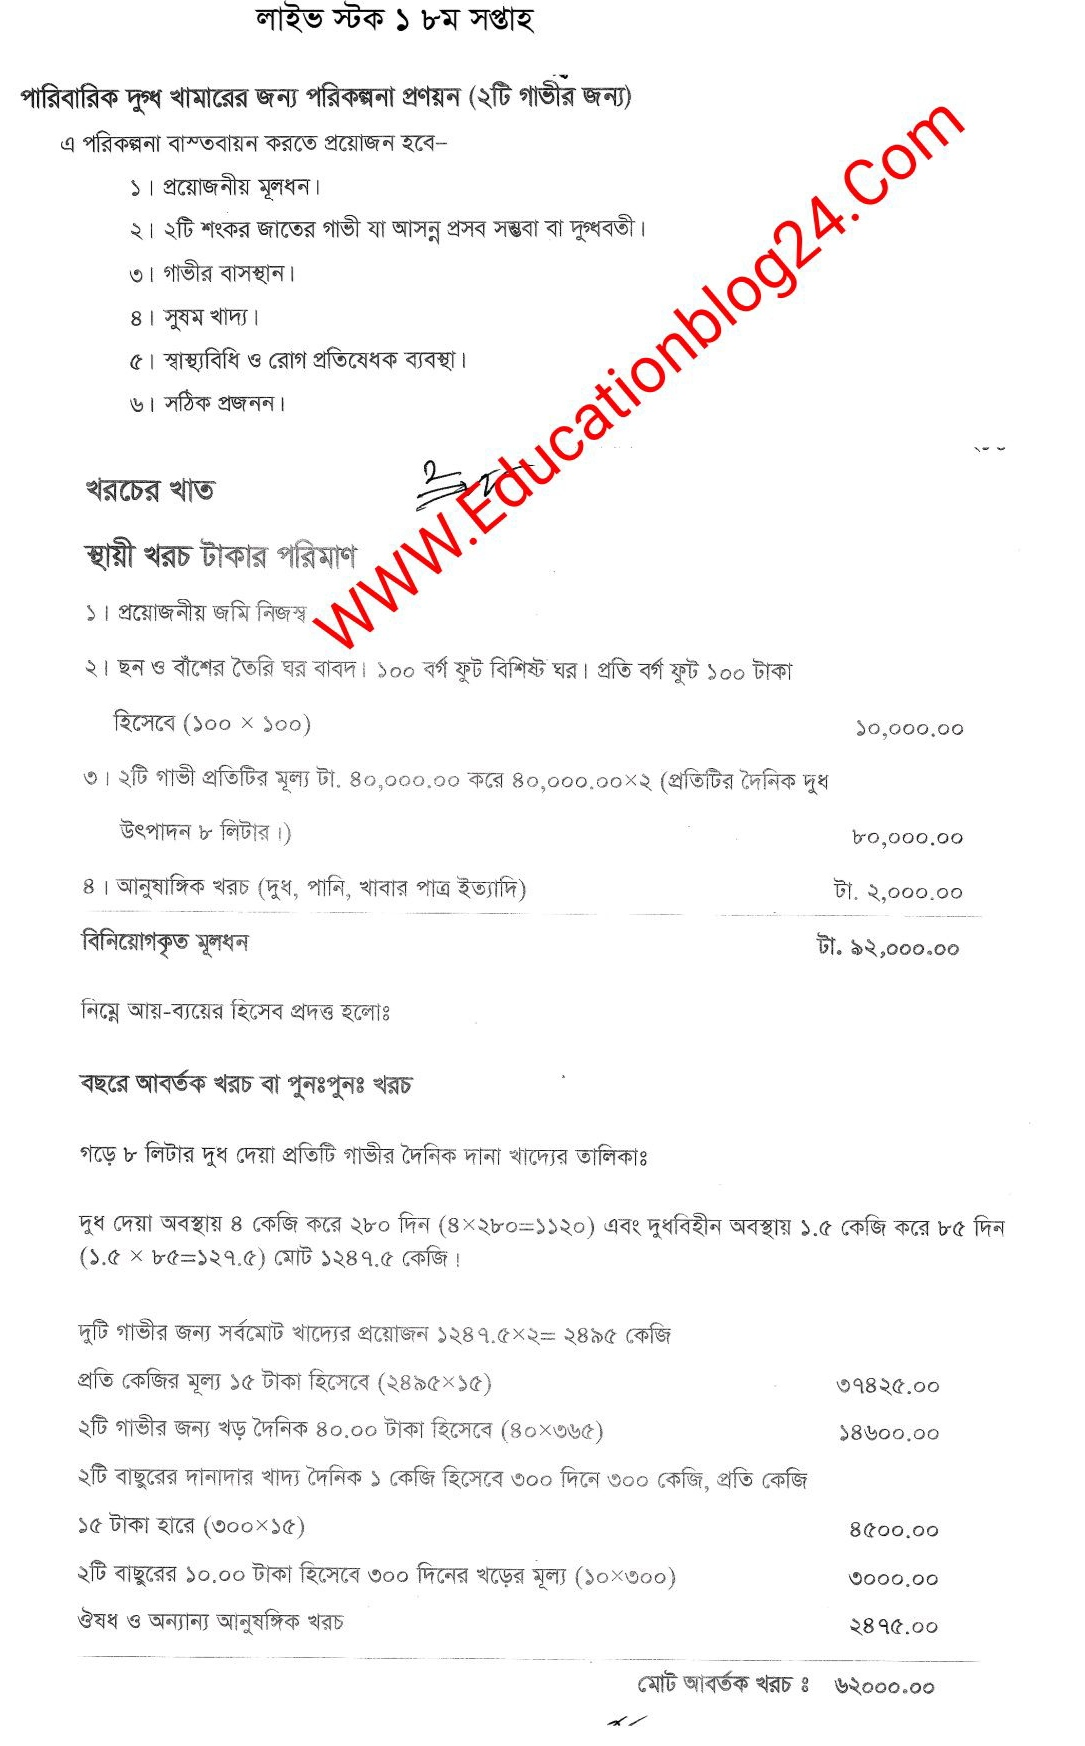 SSC / Dakhil (Vocational) Livestock Rearing and Farming Assignment Answer 2021 17